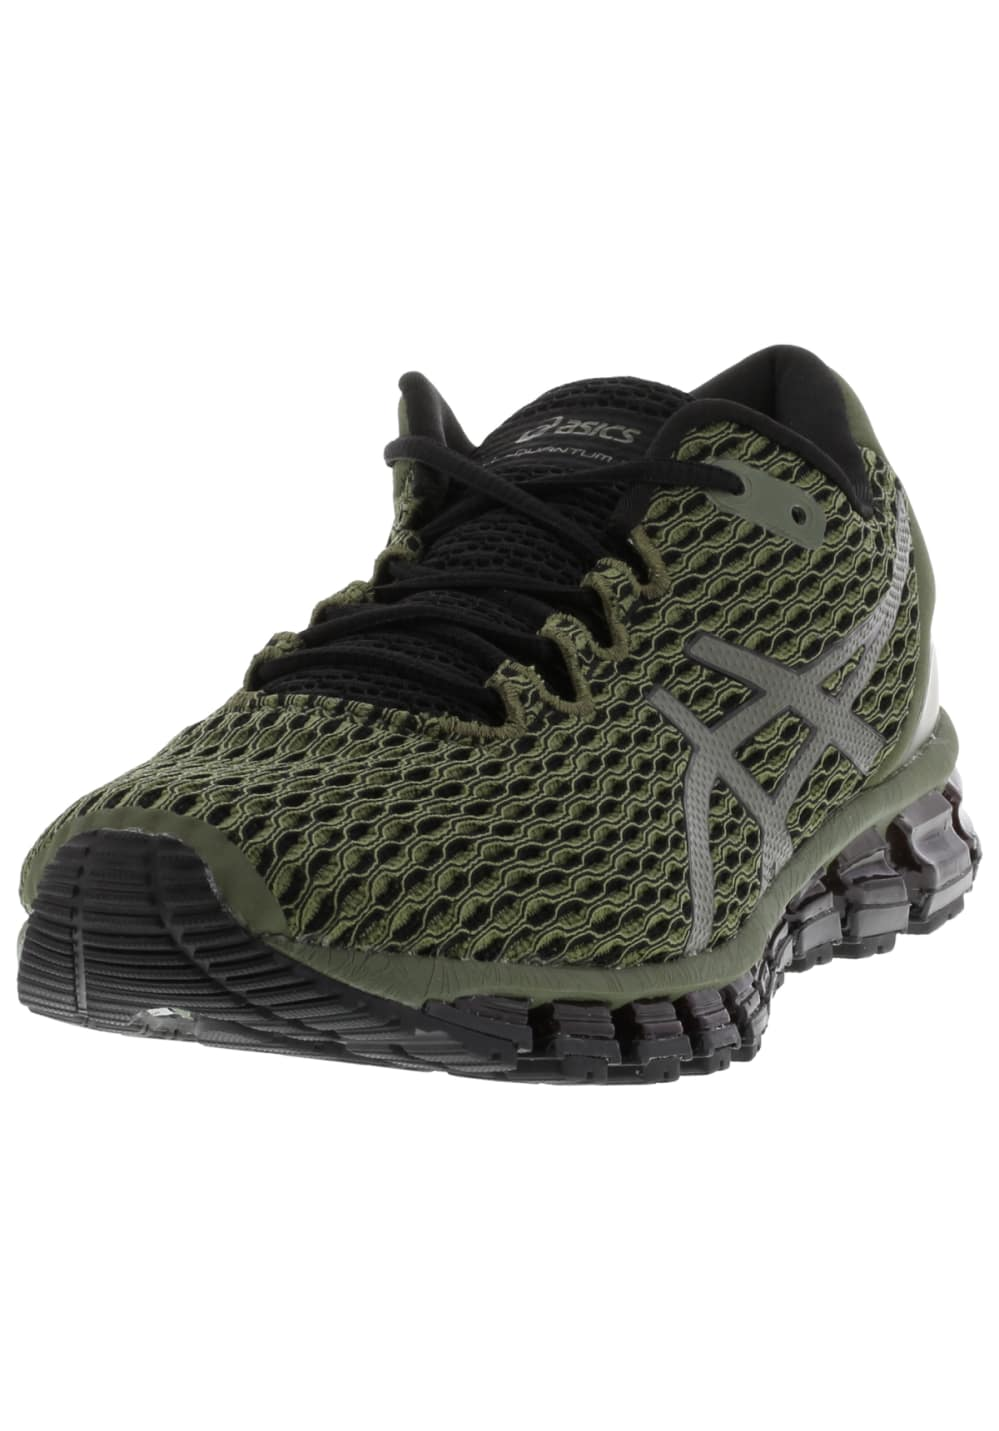 00be1de148924 ASICS GEL-Quantum 360 Shift MX - Running shoes for Men - Green | 21RUN